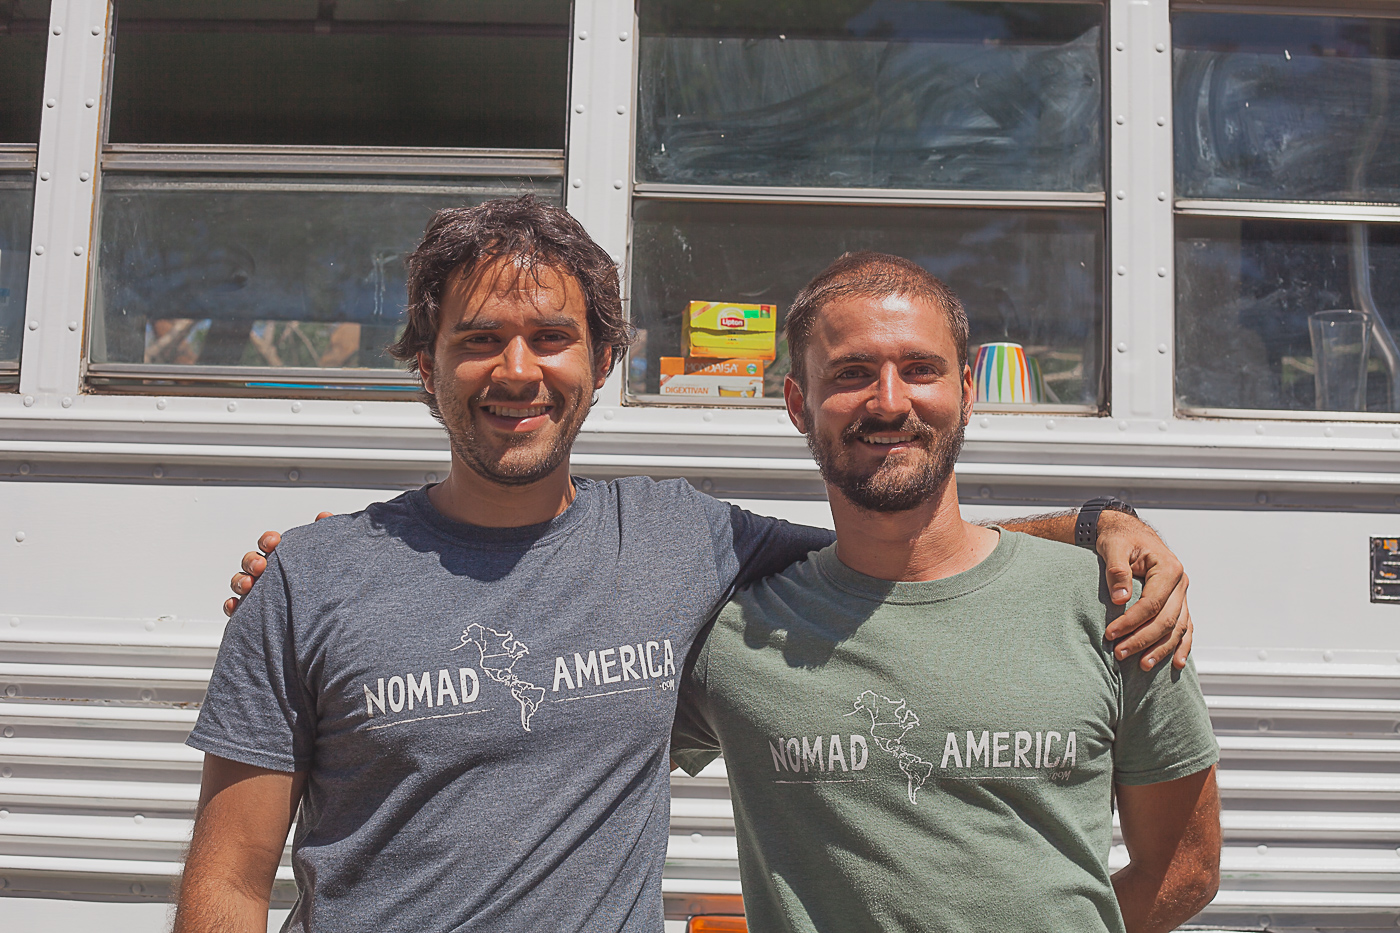 Nomad America - Meet Luis and Fabio two fabulous guys who run Nomad America.  Without them we could not have pulled this fundraiser off.  They are the ones who found our fundraiser family, who put up money to start the project and donated some funds to the cause. Not only were they a great help, but they are great guys. We loved meeting them and feel like we have new friends.